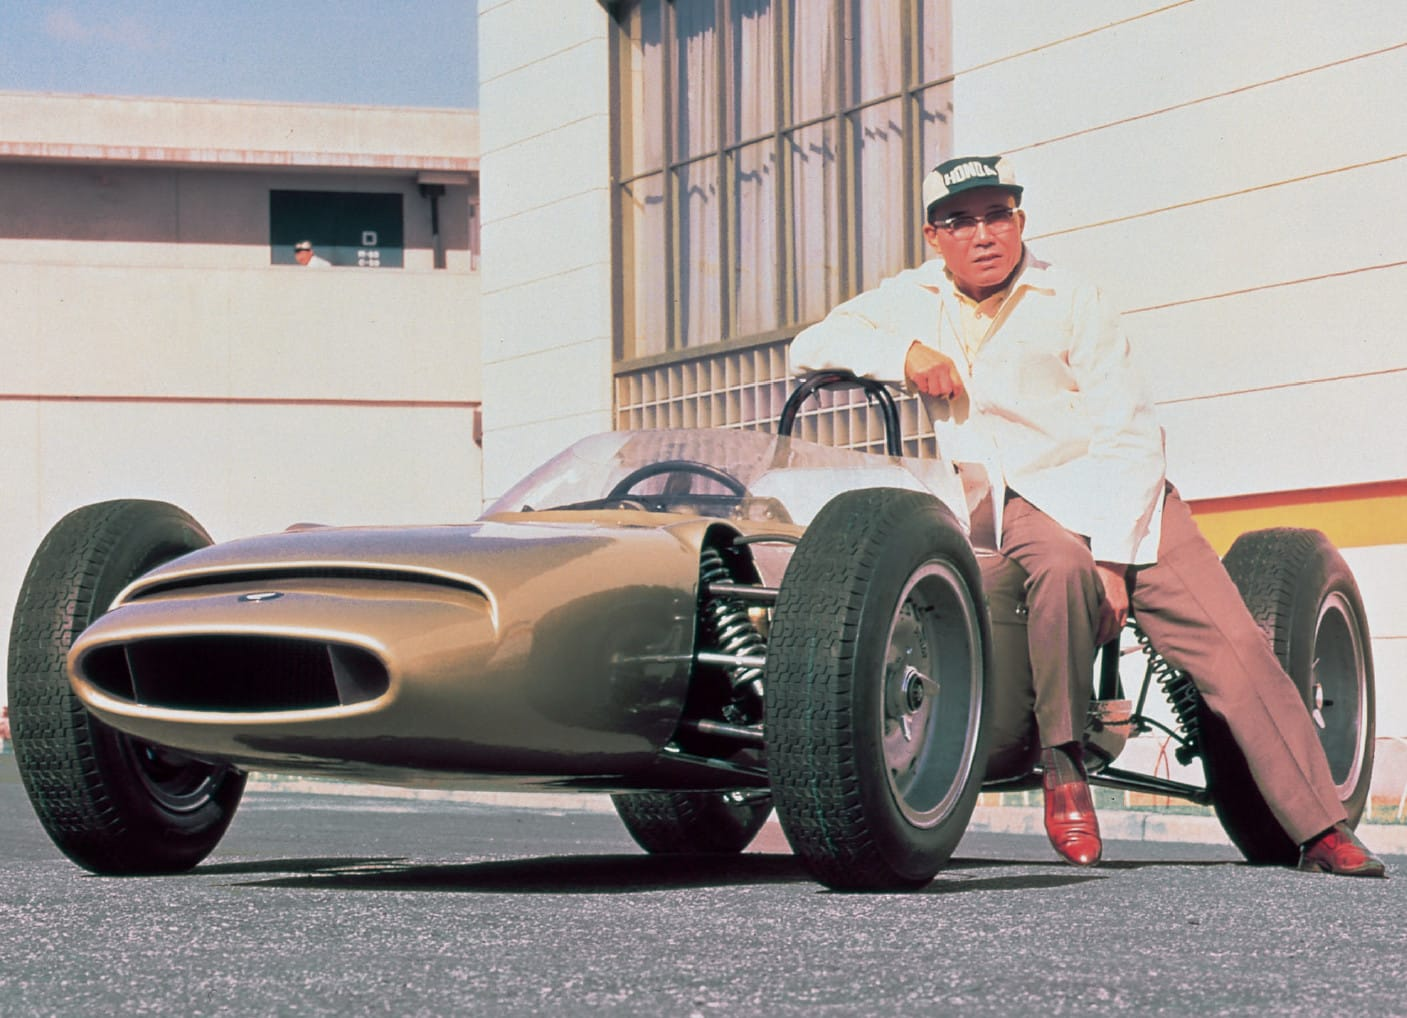 Soichiro Honda with Honda vehicle